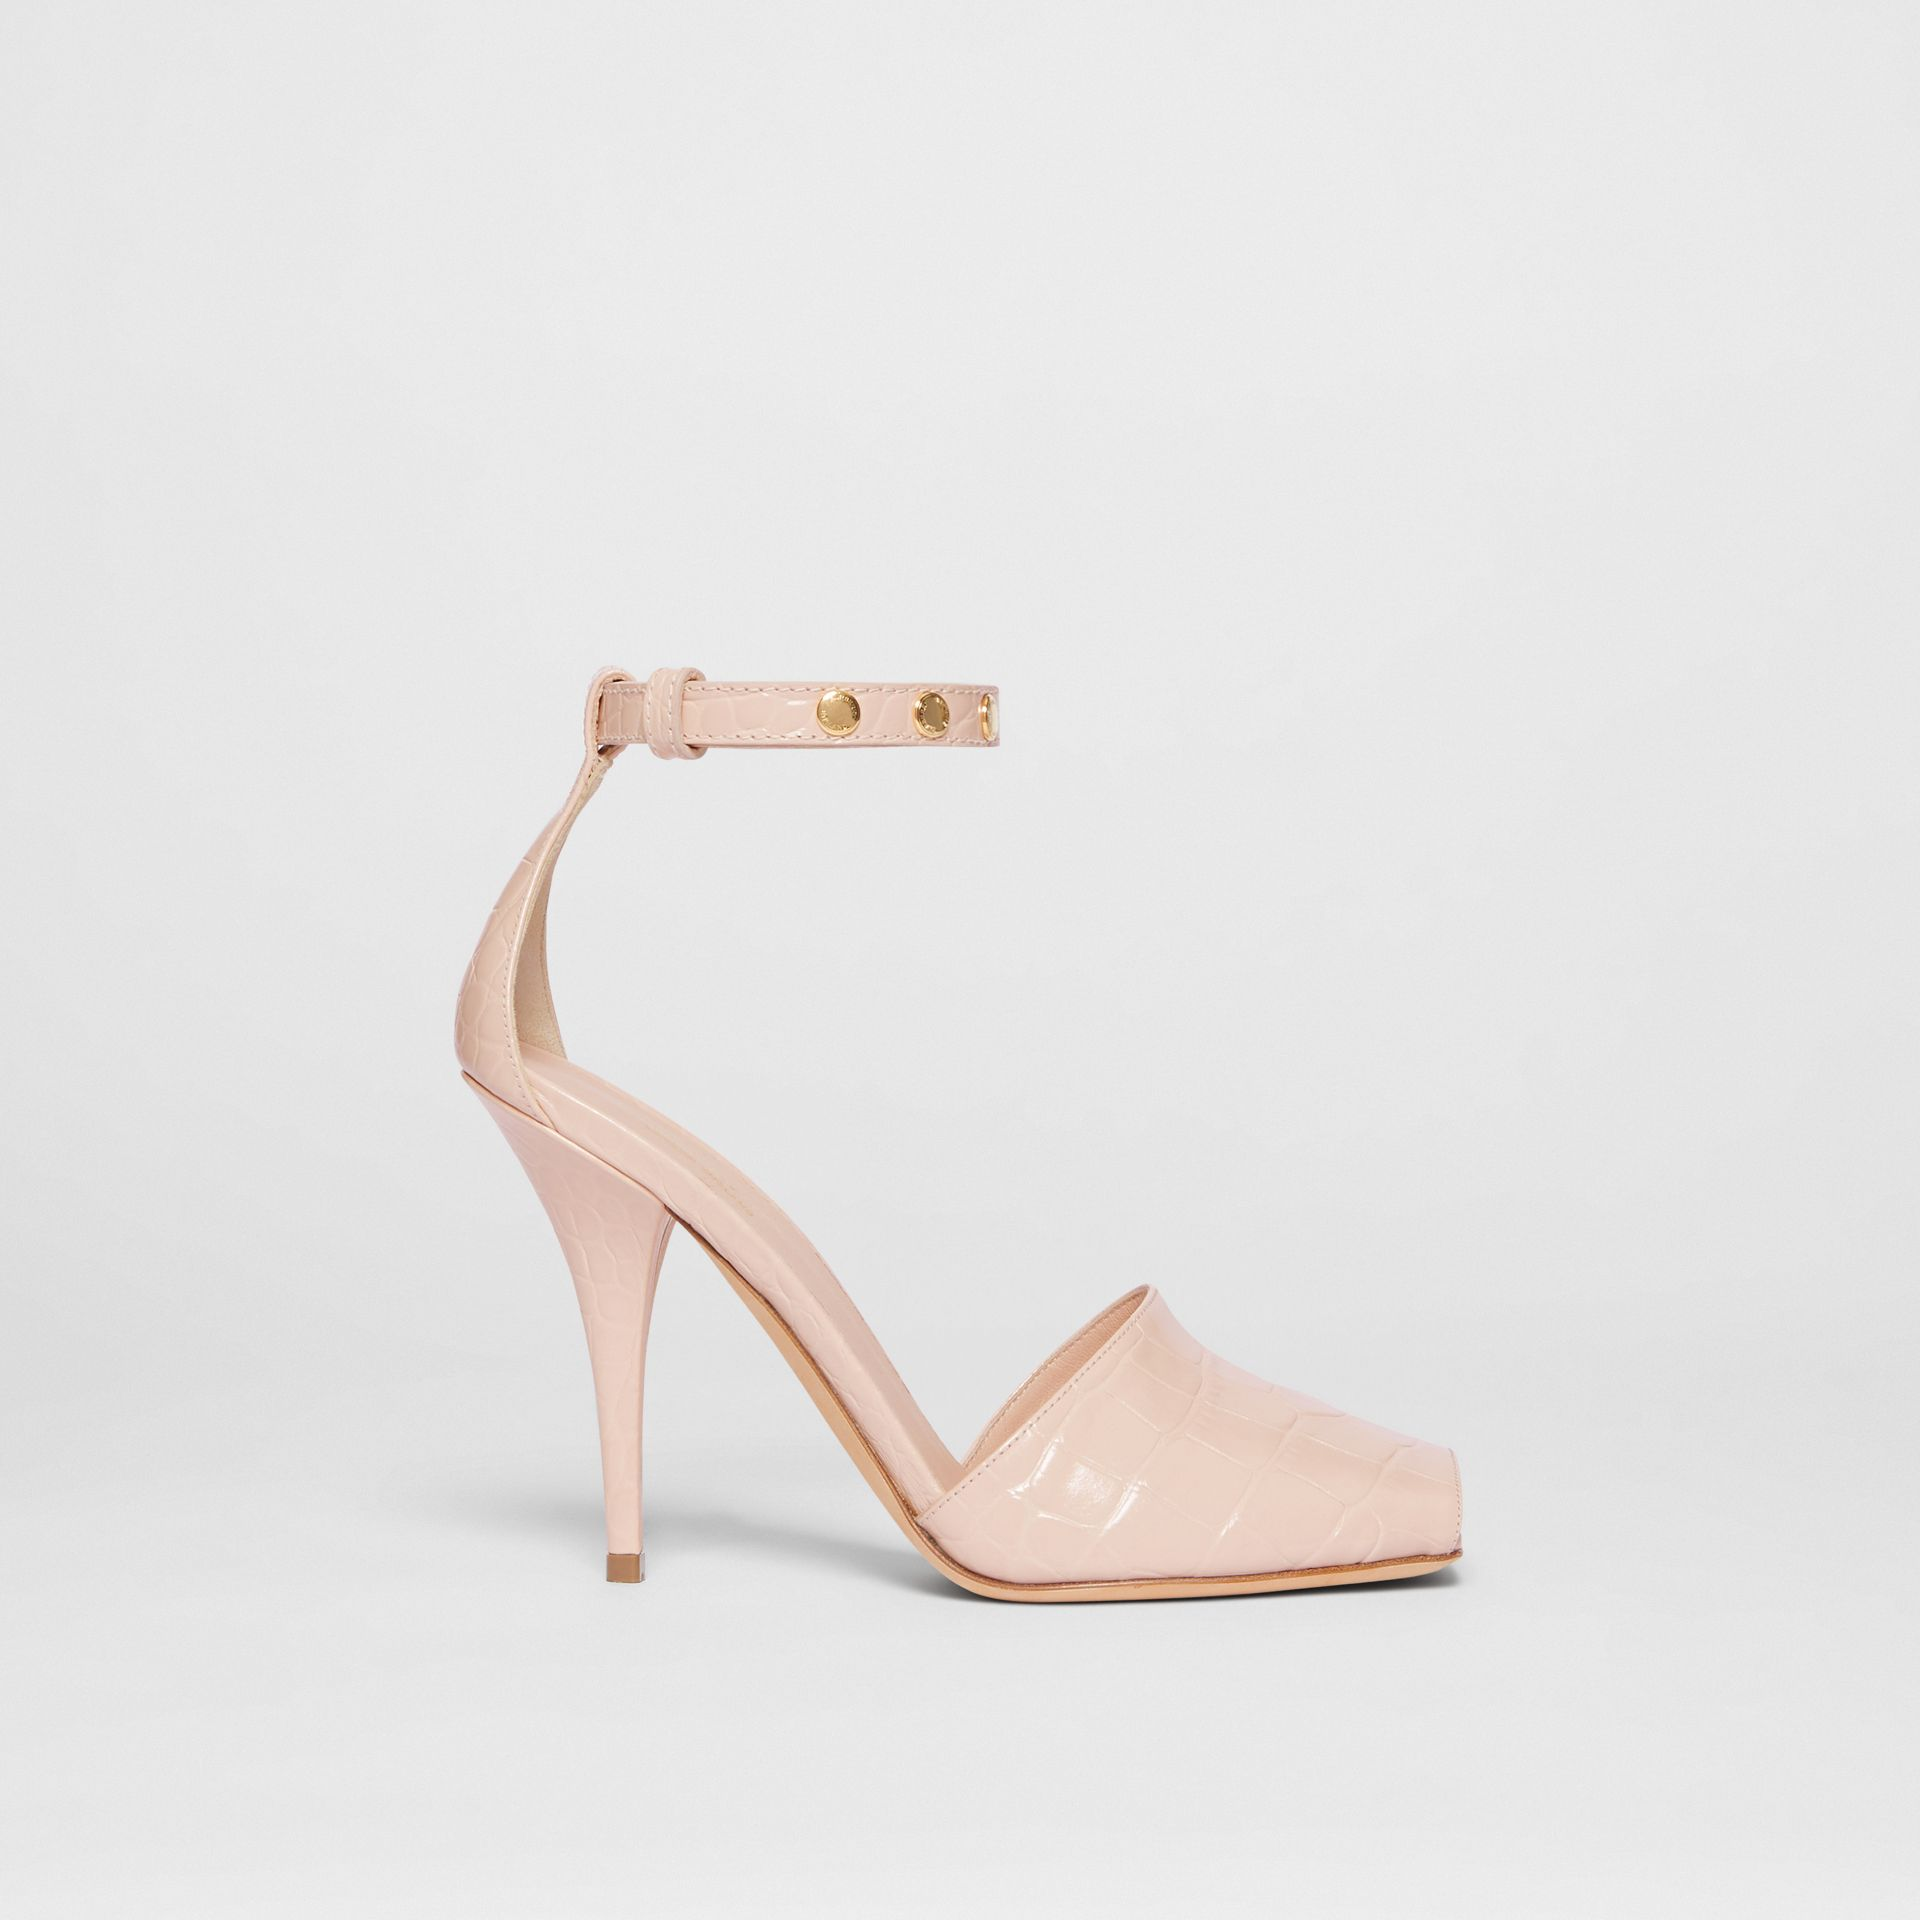 Triple Stud Embossed Leather Peep-toe Sandals in Rose Beige - Women | Burberry - gallery image 5